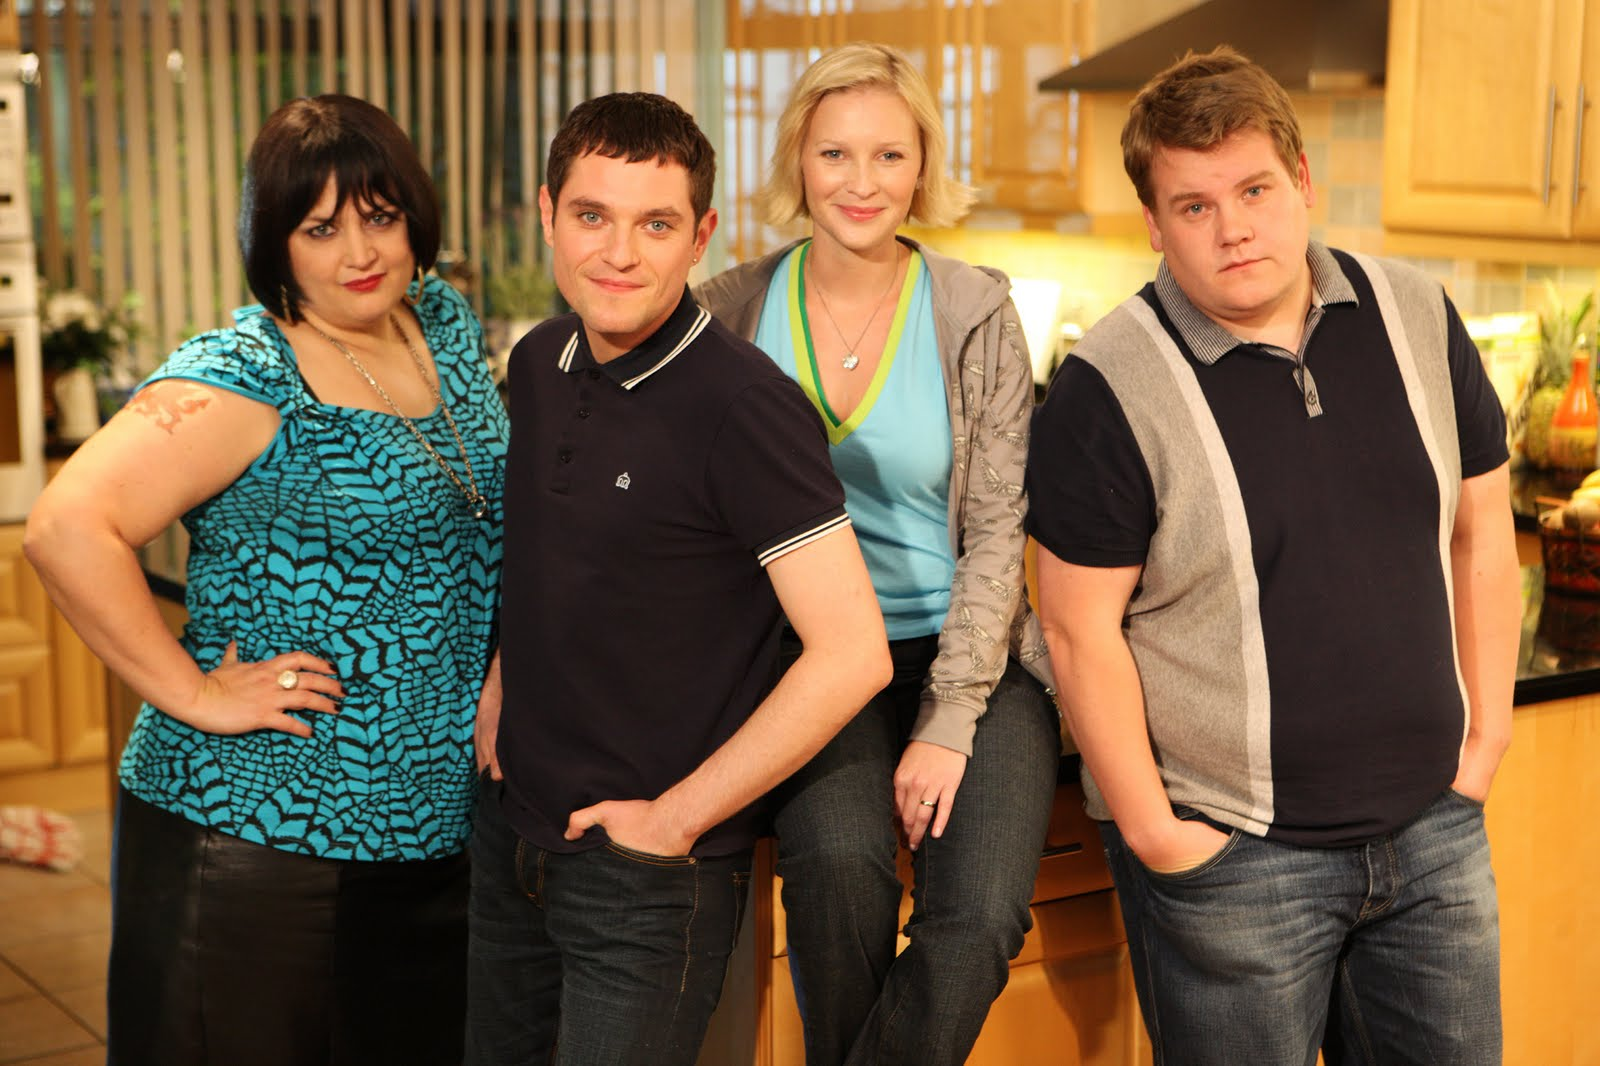 gavin and stacey - photo #14